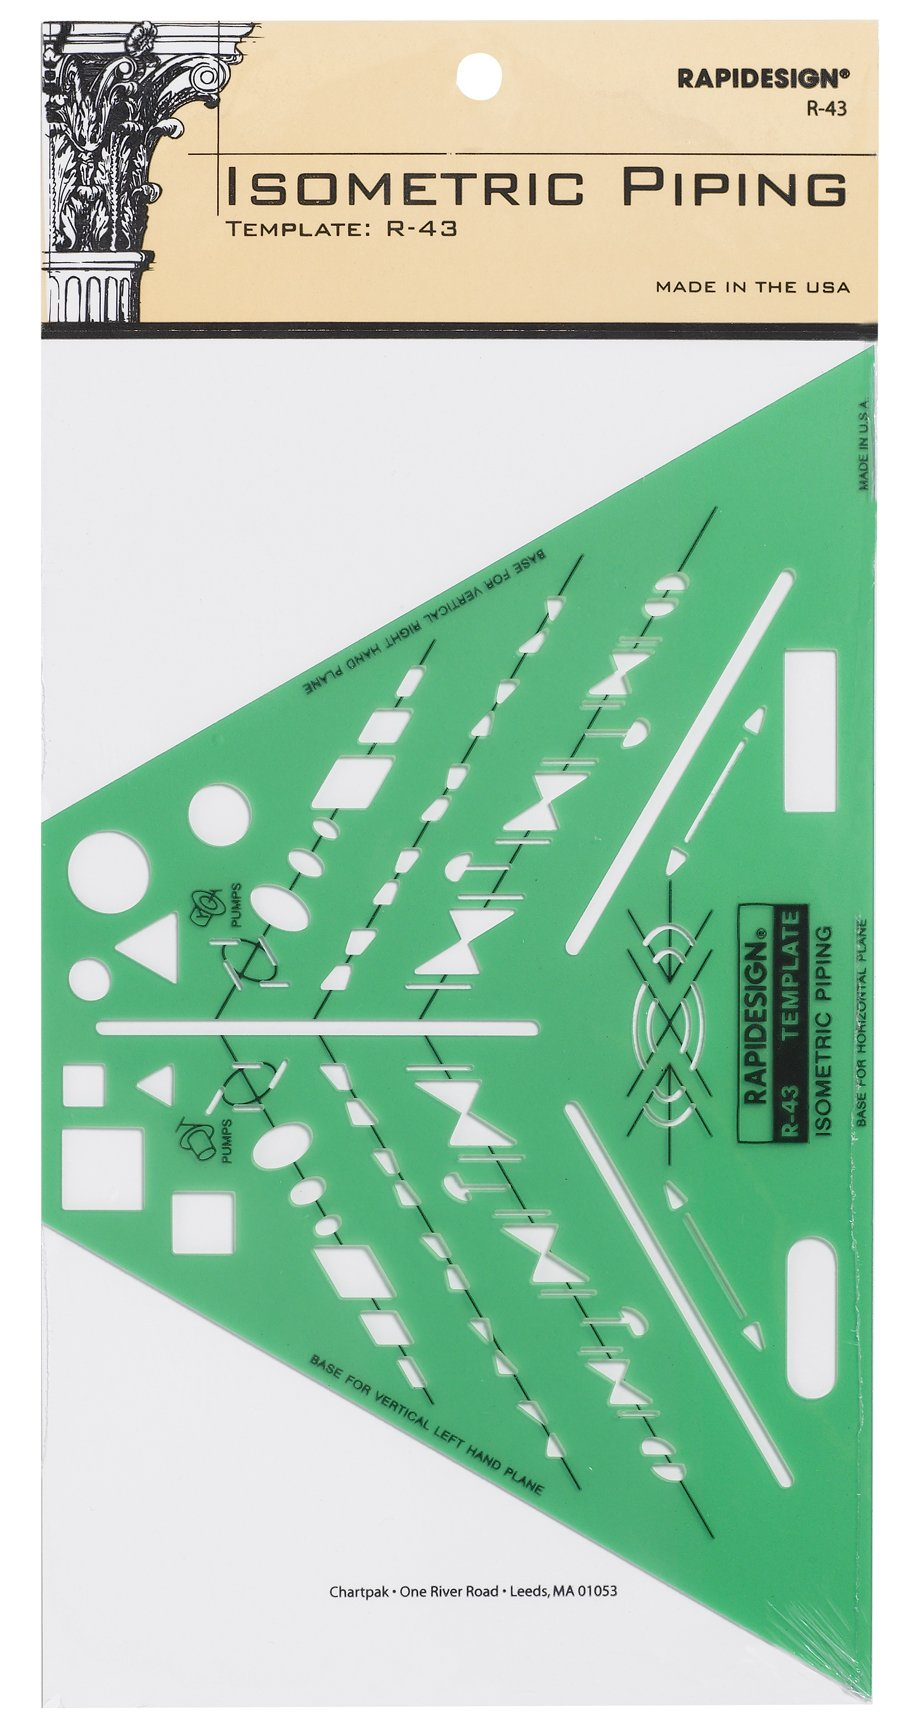 Rapidesign Isometric Piping Template, 1 Each (R43) by RAPIDESIGN